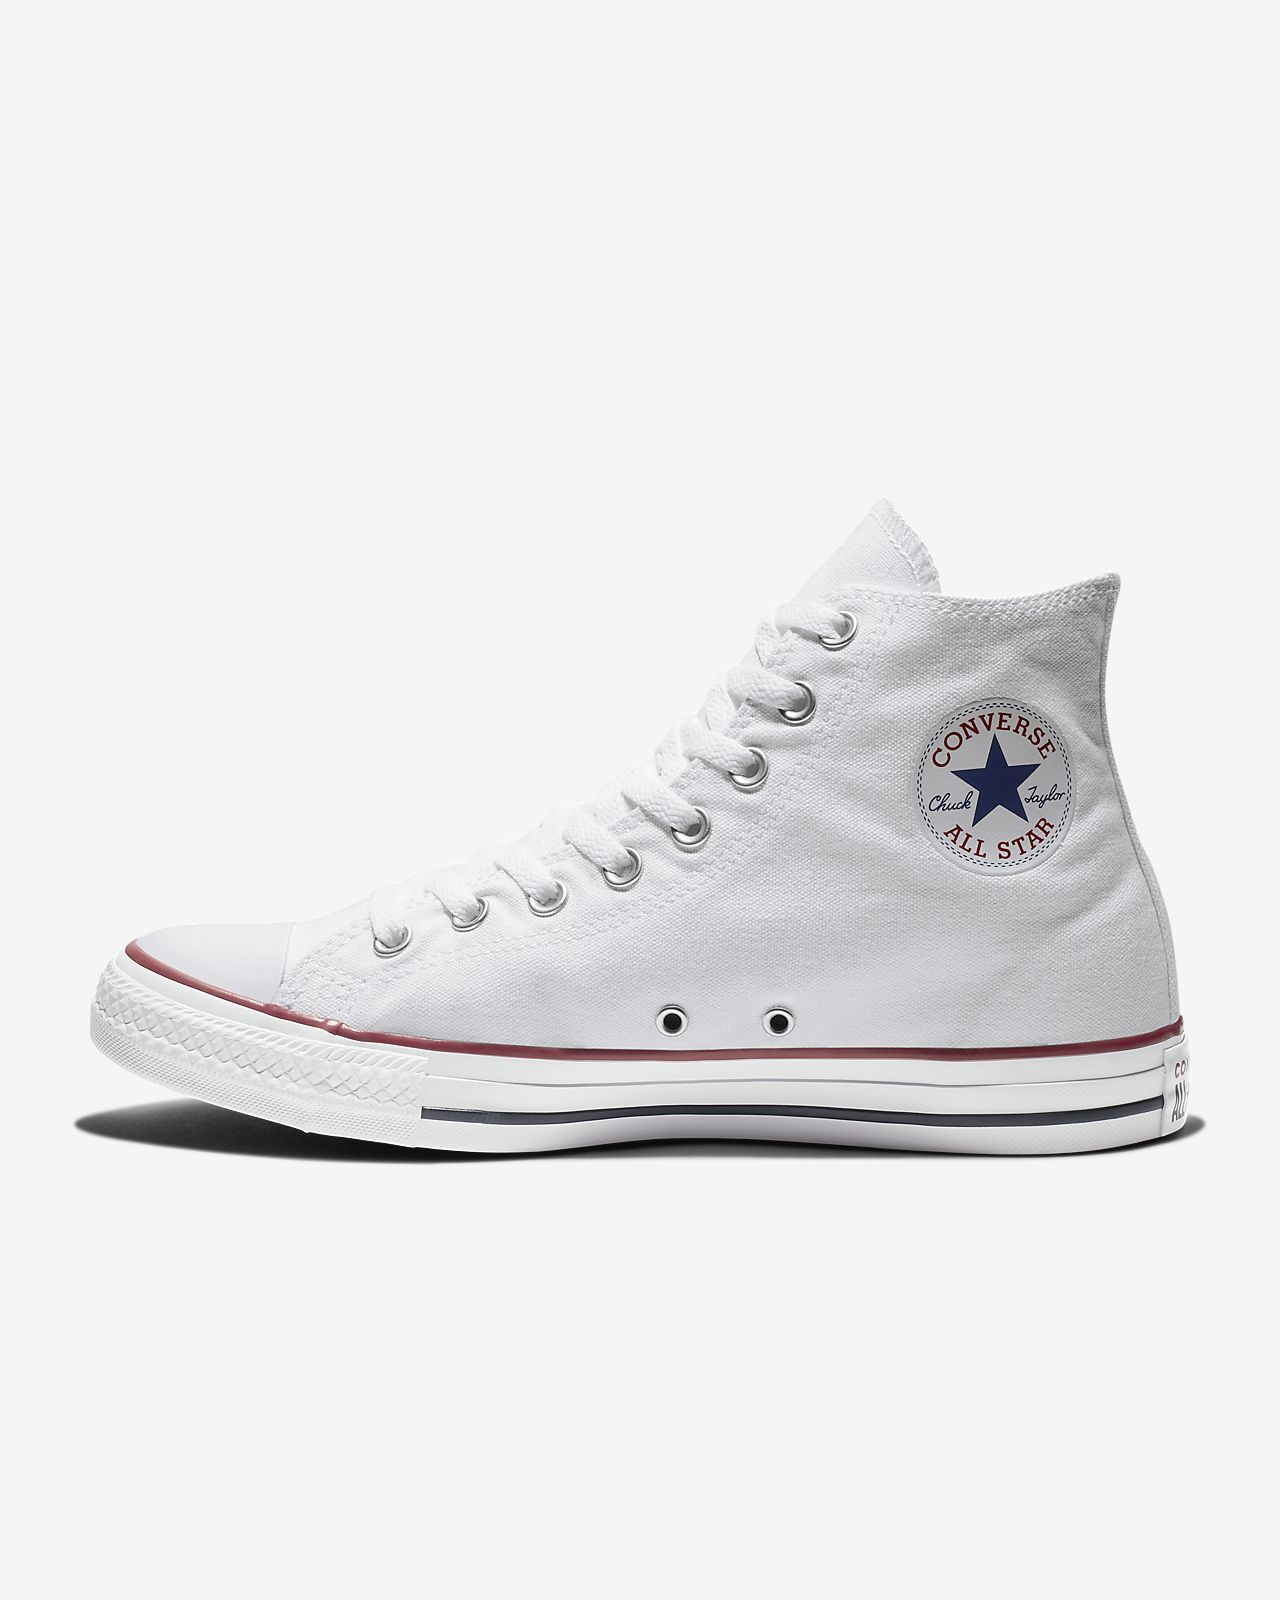 dbc4a3b709a1 Nike Unisex Shoe Converse Chuck Taylor All Star High Top